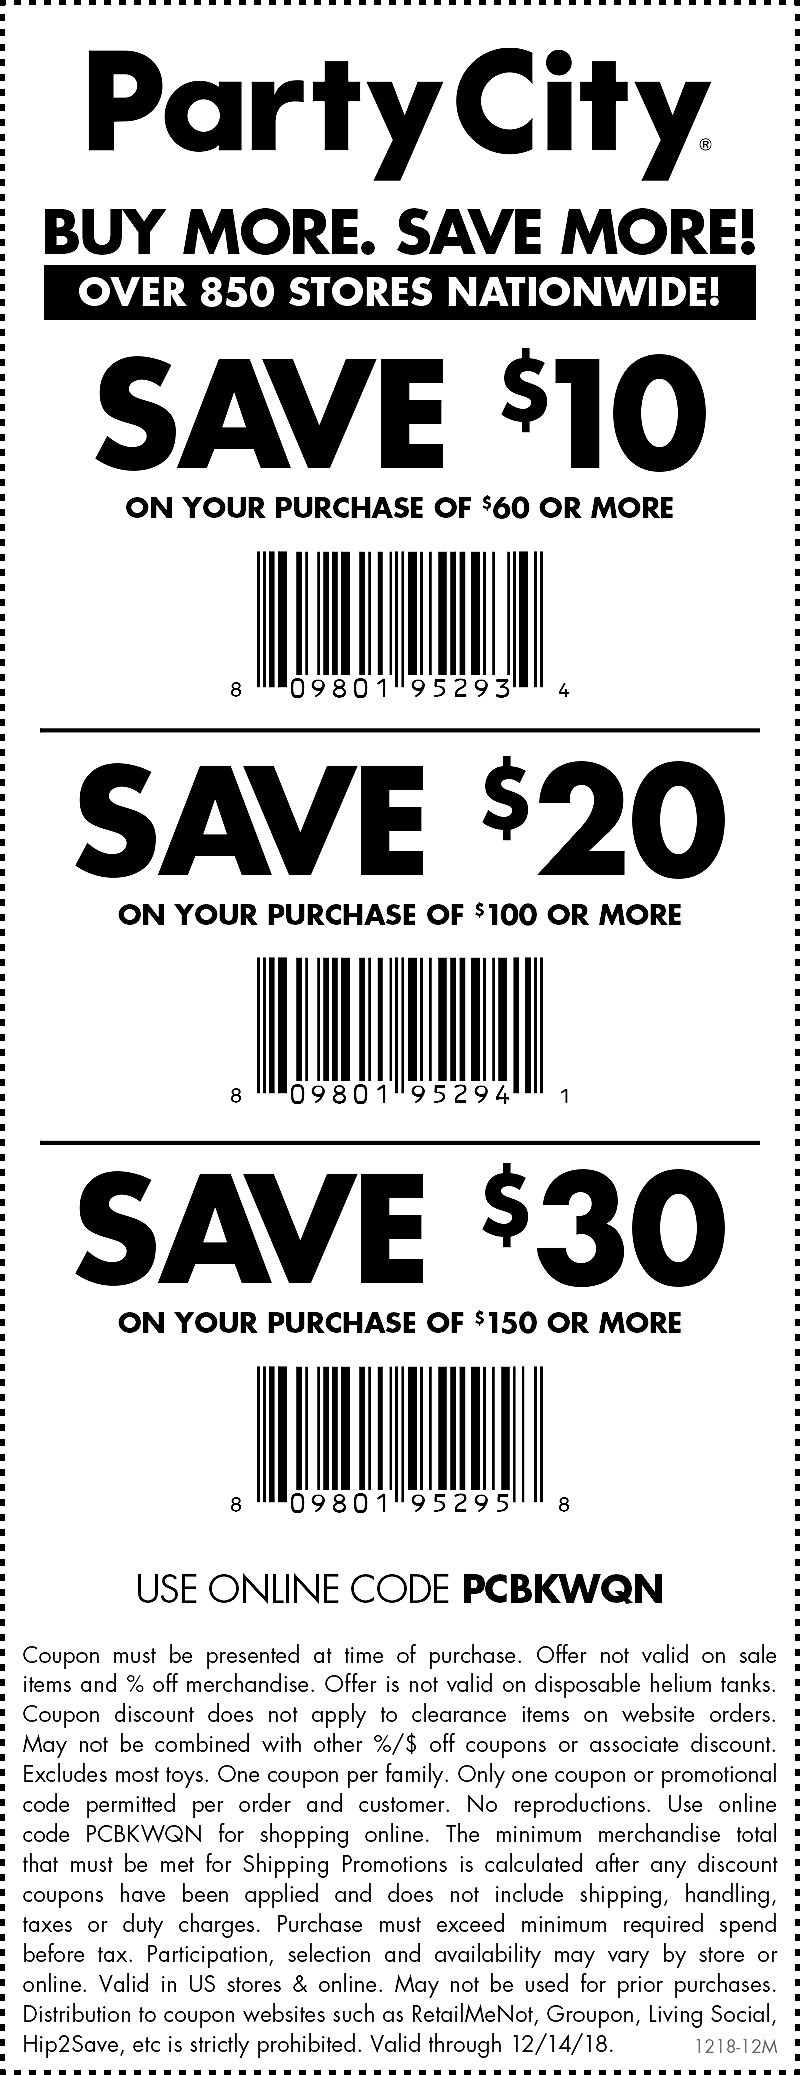 PartyCity.com Promo Coupon $10 off $60 & more today at Party City, or online via promo code PCBKWQN